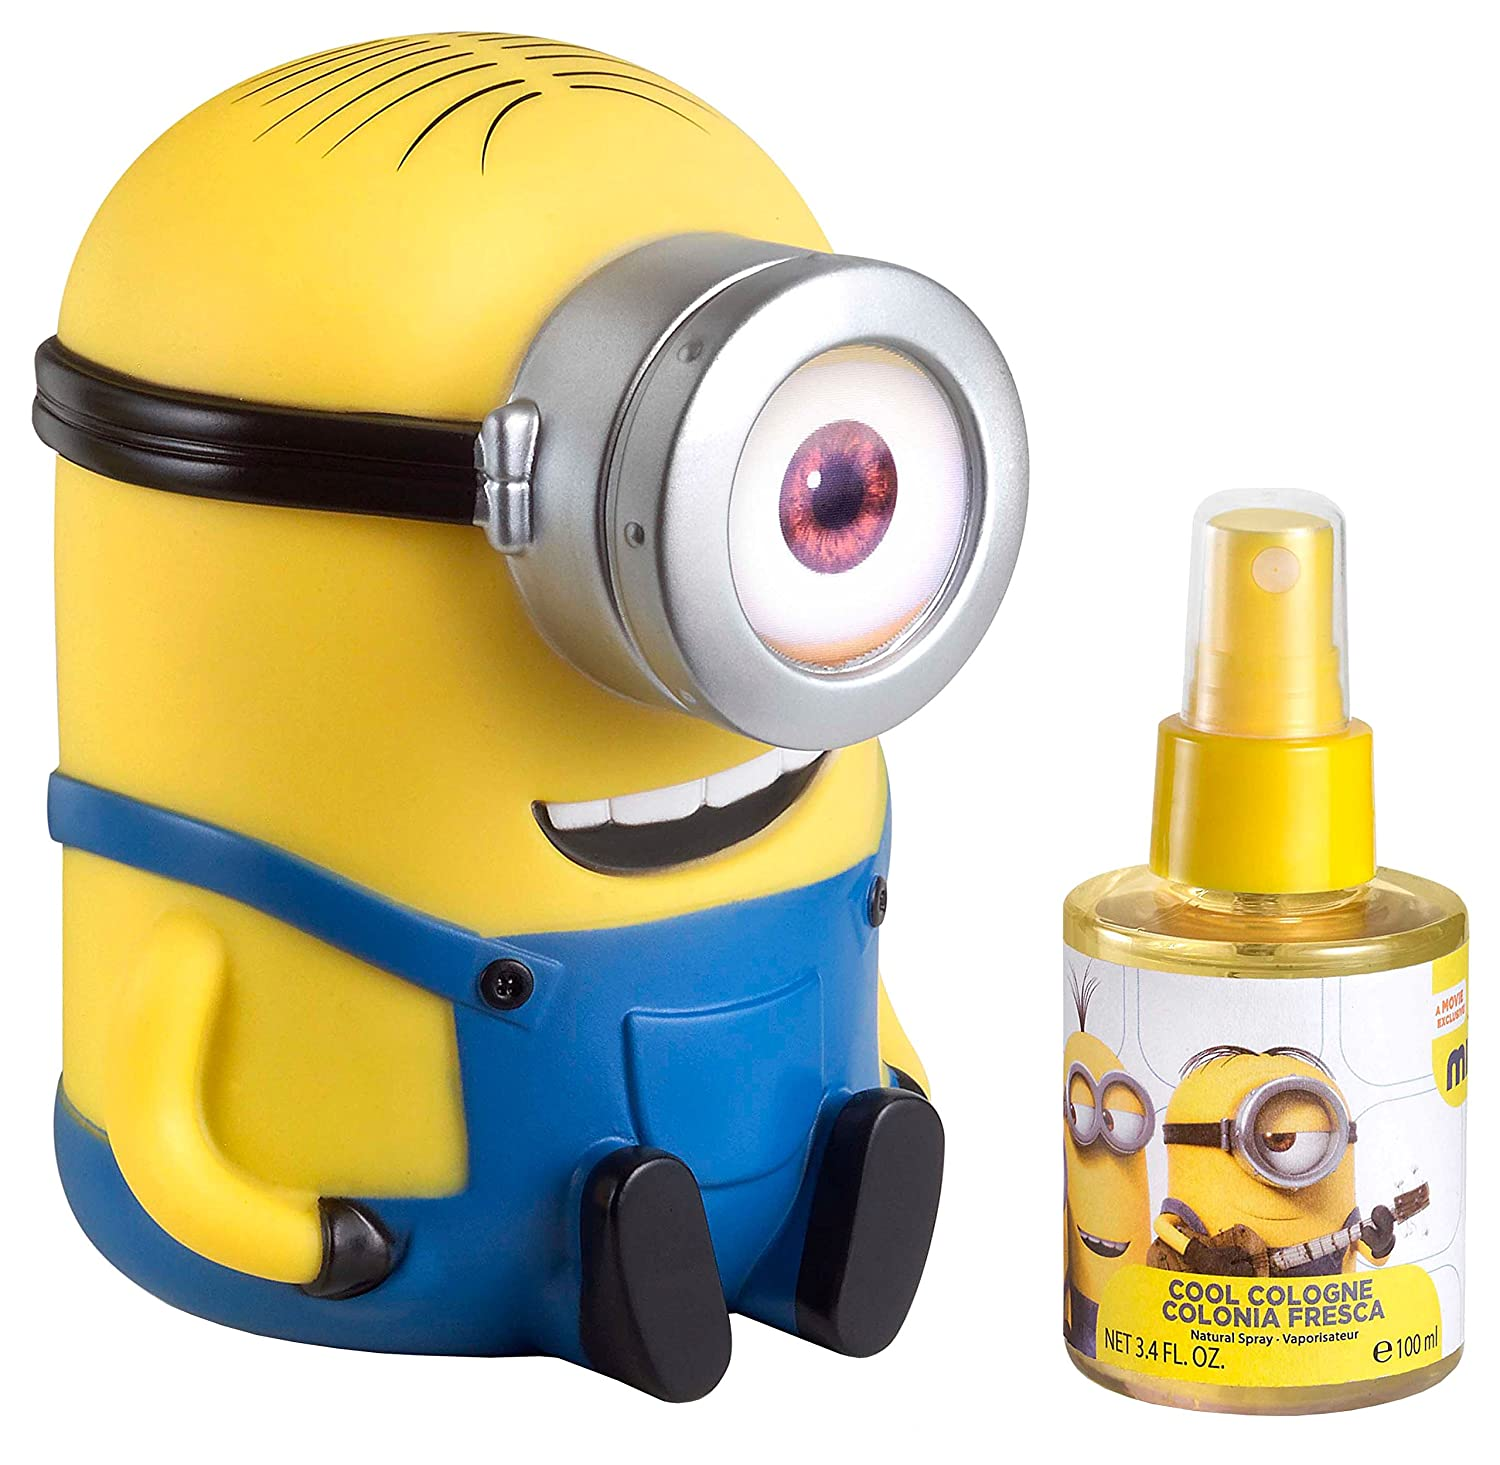 Minions 6284 - Colonia fresca, 100 ml Air-Val 48921